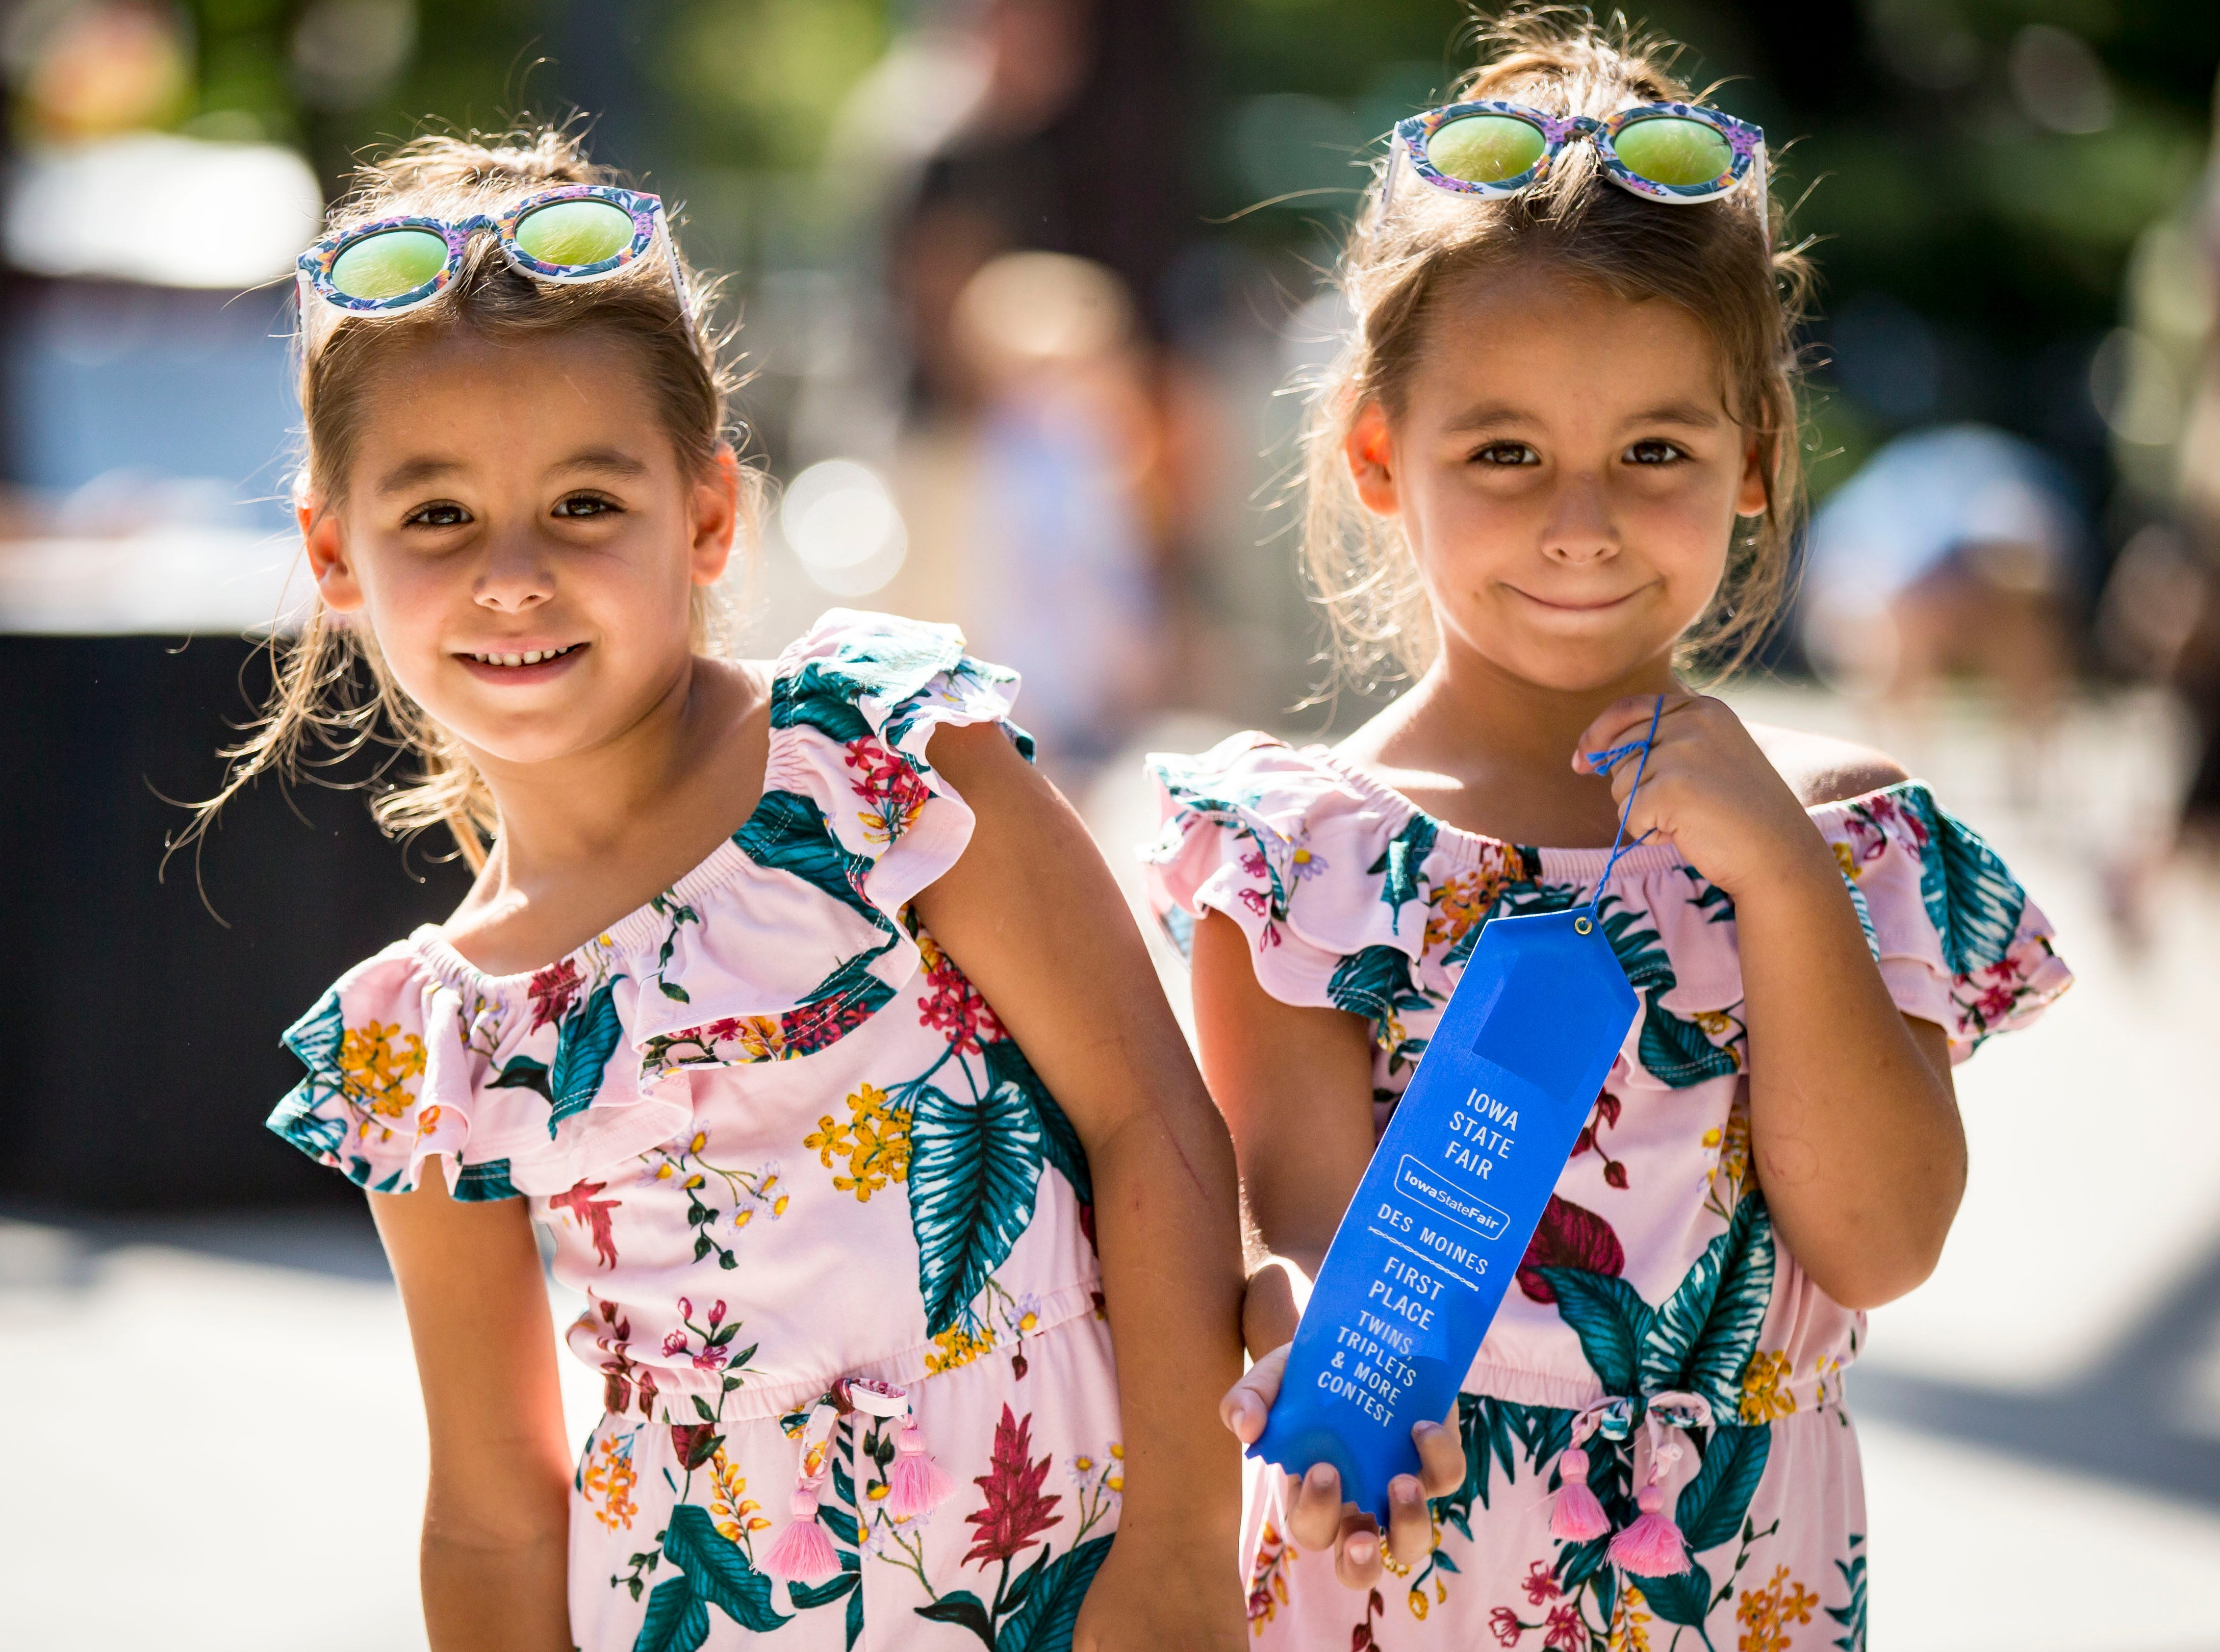 Blue ribbon winners in the five and six year old category Rory, left, and Nellie Deutmeyer of Urbandale during the Twins, Triplets and More Contest on the Anne and Bill Riley Stage at the 2018 Iowa State Fair in Des Moines Thursday, Aug. 9, 2018.